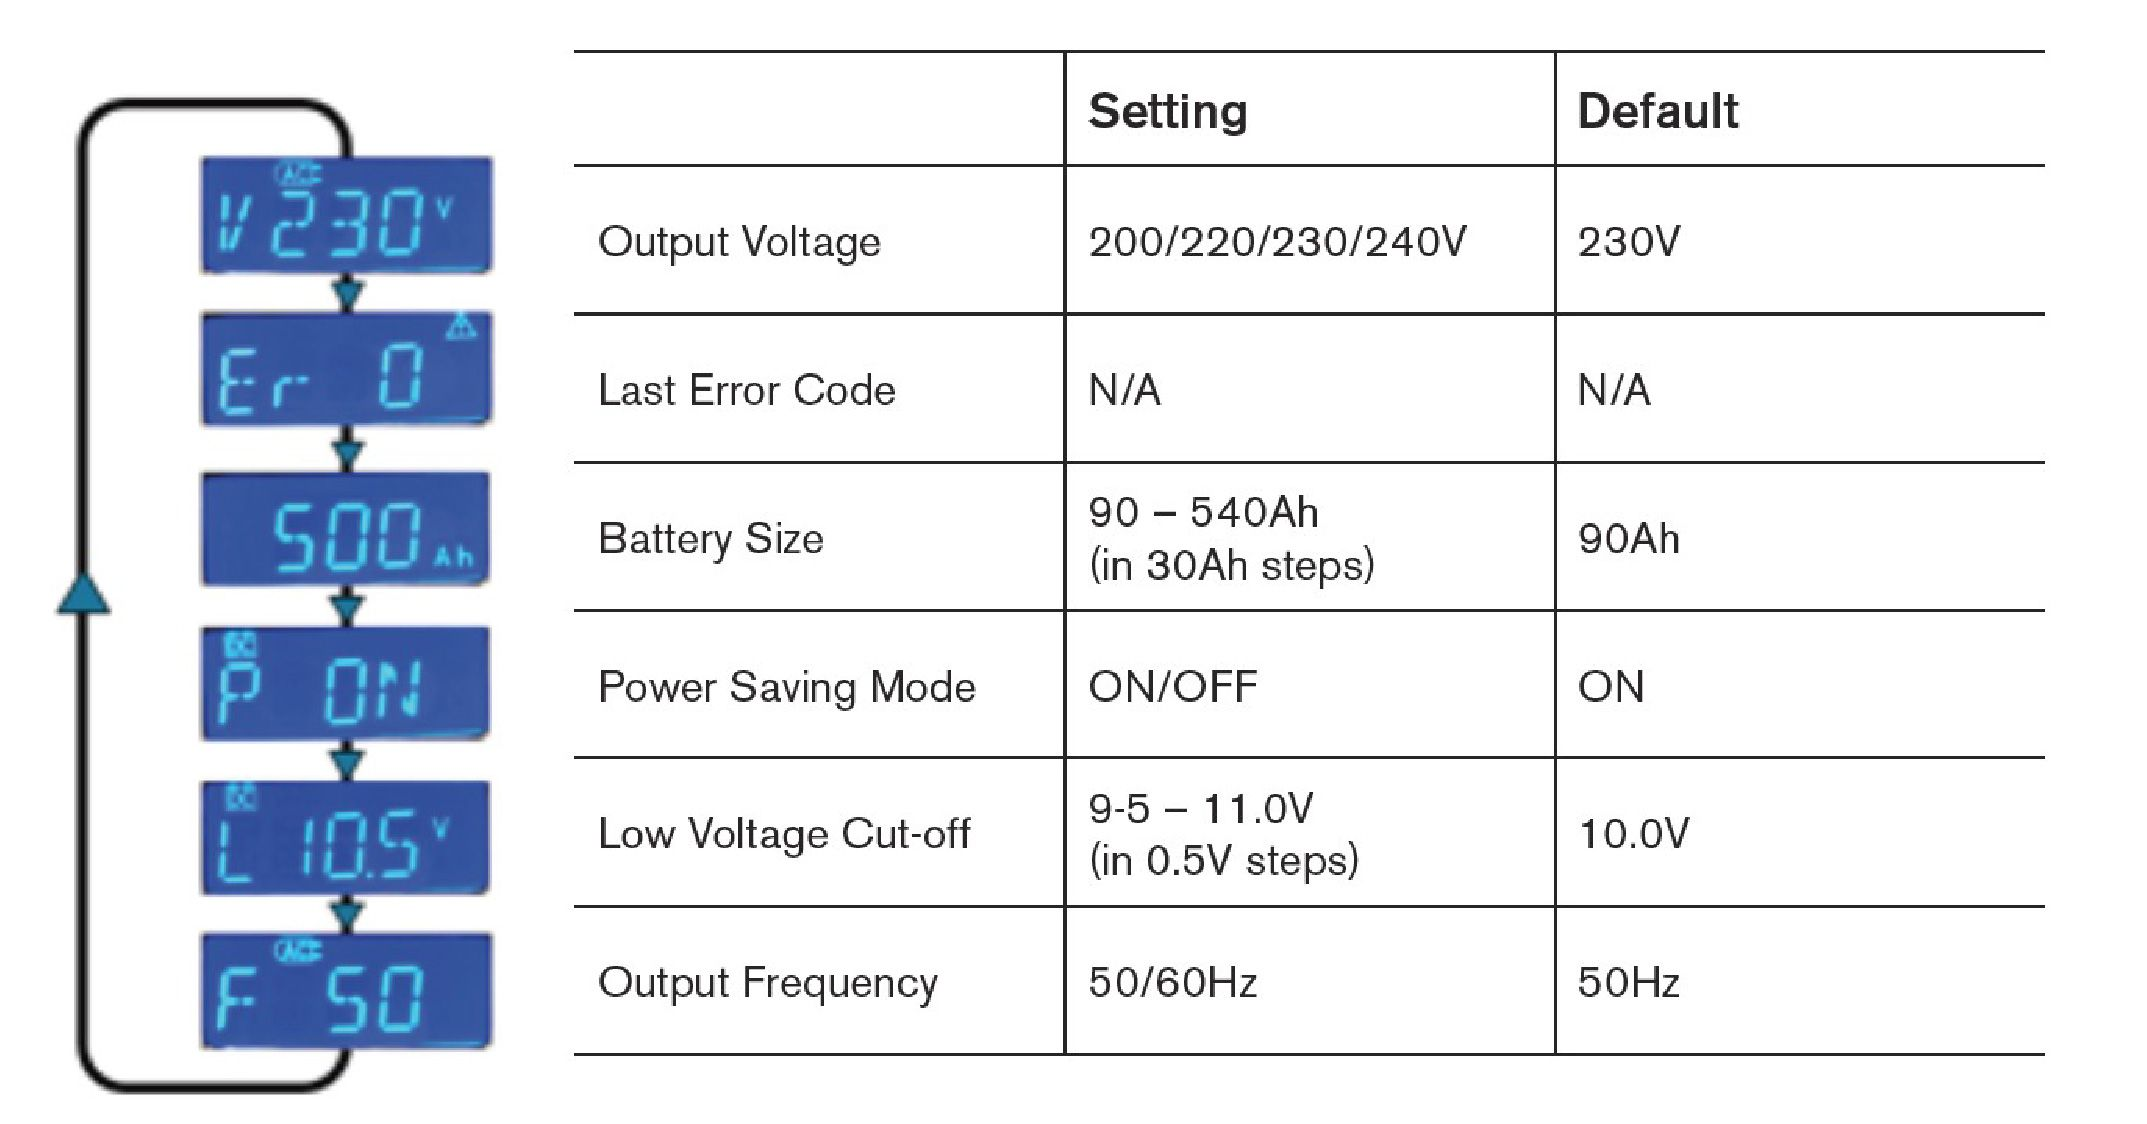 PSW Inverter LCD Set Up Mode Description